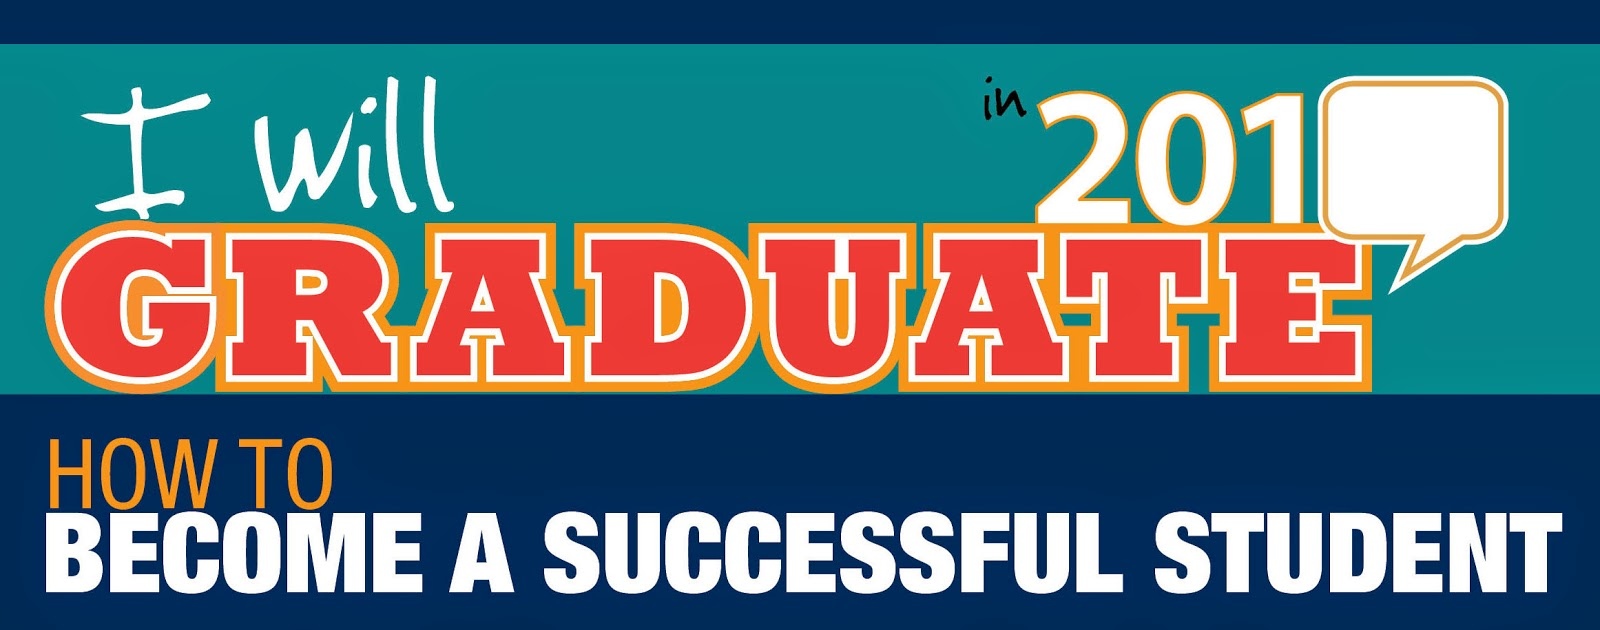 "Header reads ""I will graduate 201 (fill in the blank).  How to Become a Success Student."